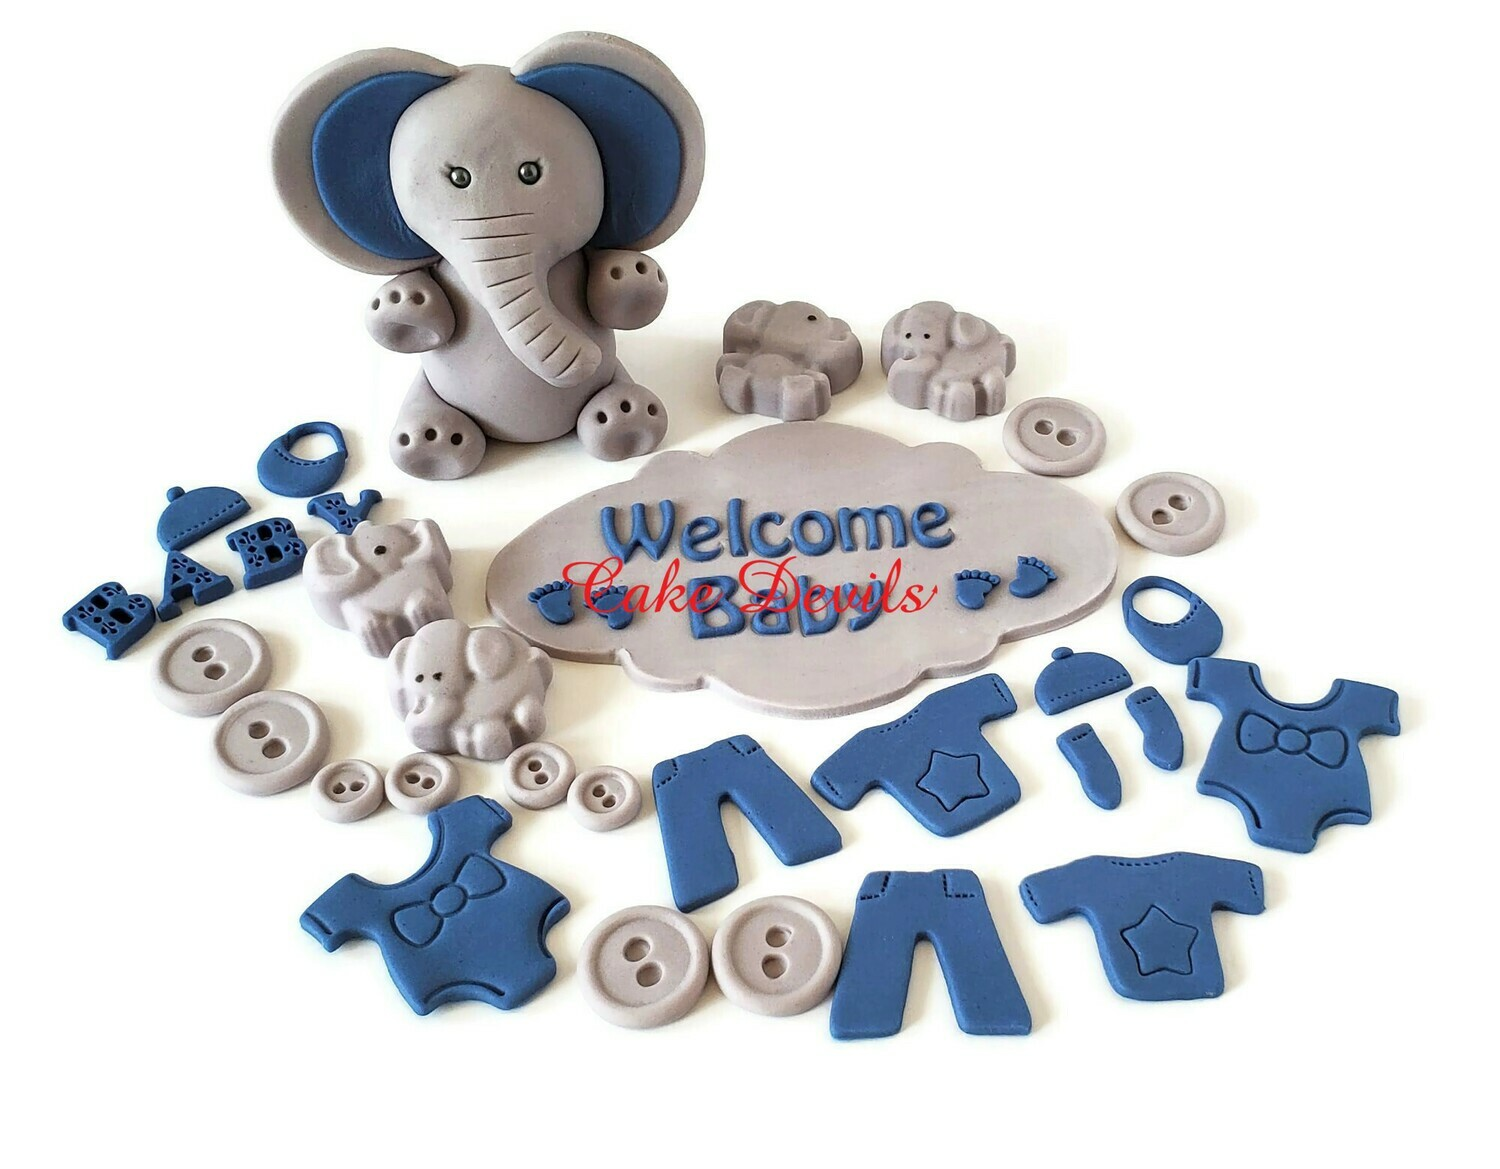 Elephant Baby Shower Cake Decorations including a Fondant Baby Elephant Cake Topper, Clothesline Cake Decorations, and plaque, handmade edible